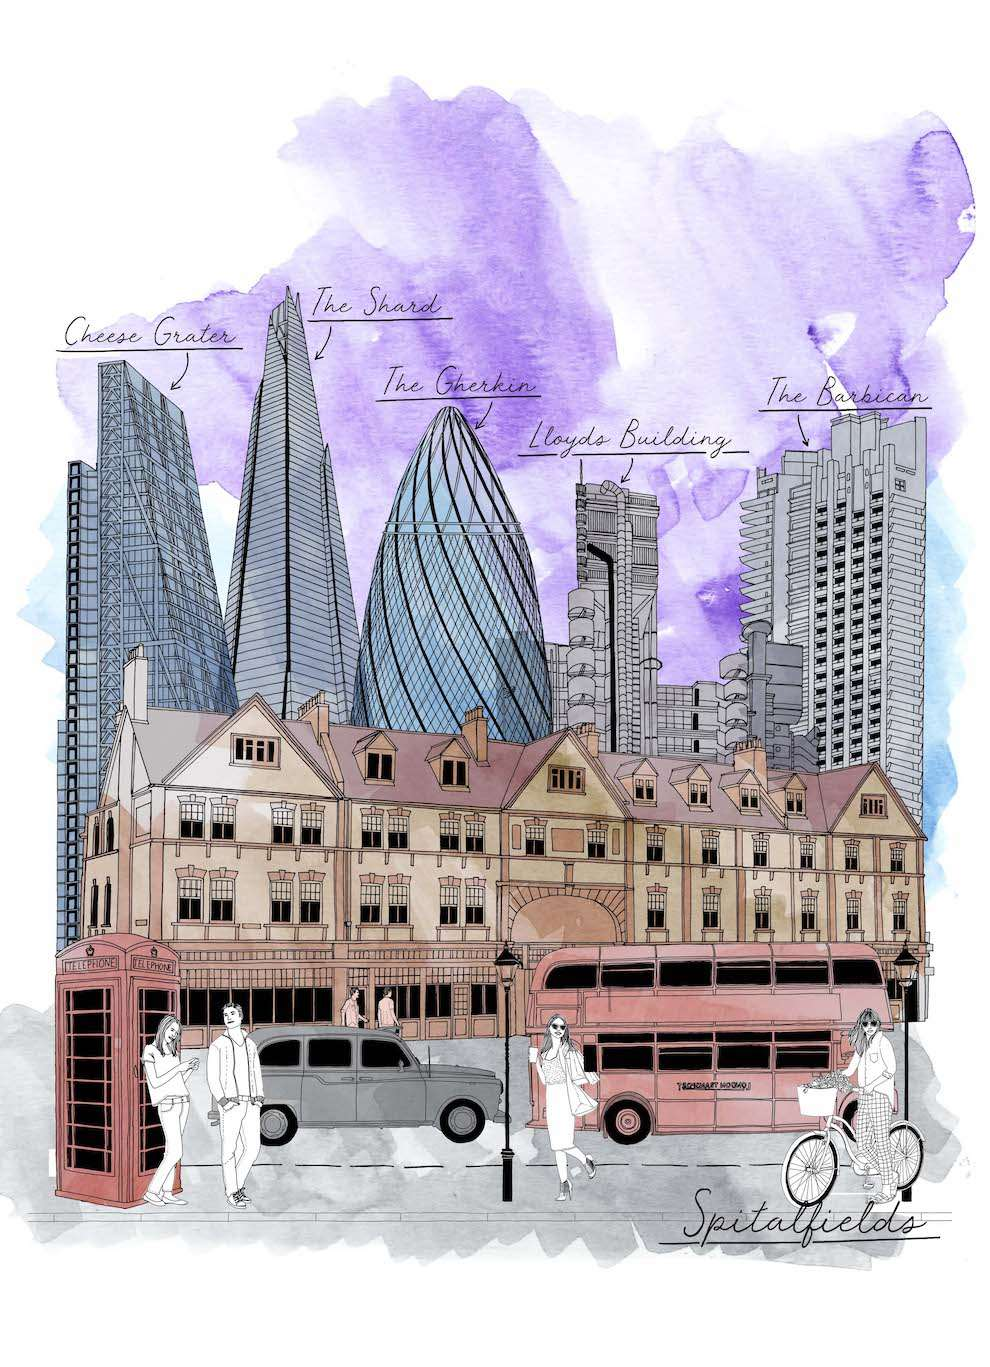 Jitesh Patel, Architectural line illustration of Spitafields market